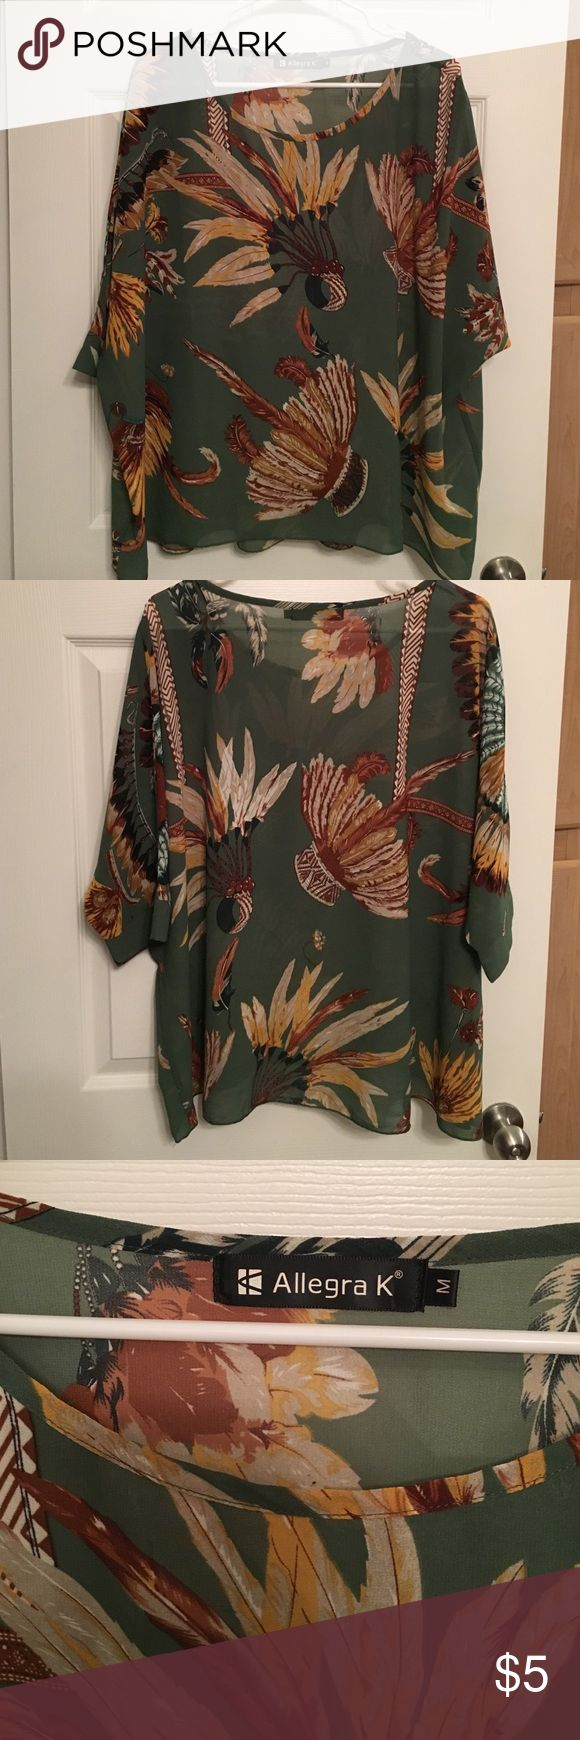 Allegra K sheer batwing top Green with feathers. Material is sheet, made for layering. 4th pic is of a small snag, hardly noticeable. Otherwise perfect condition. Worn only once. Oversize fit. Allegra K Tops Blouses